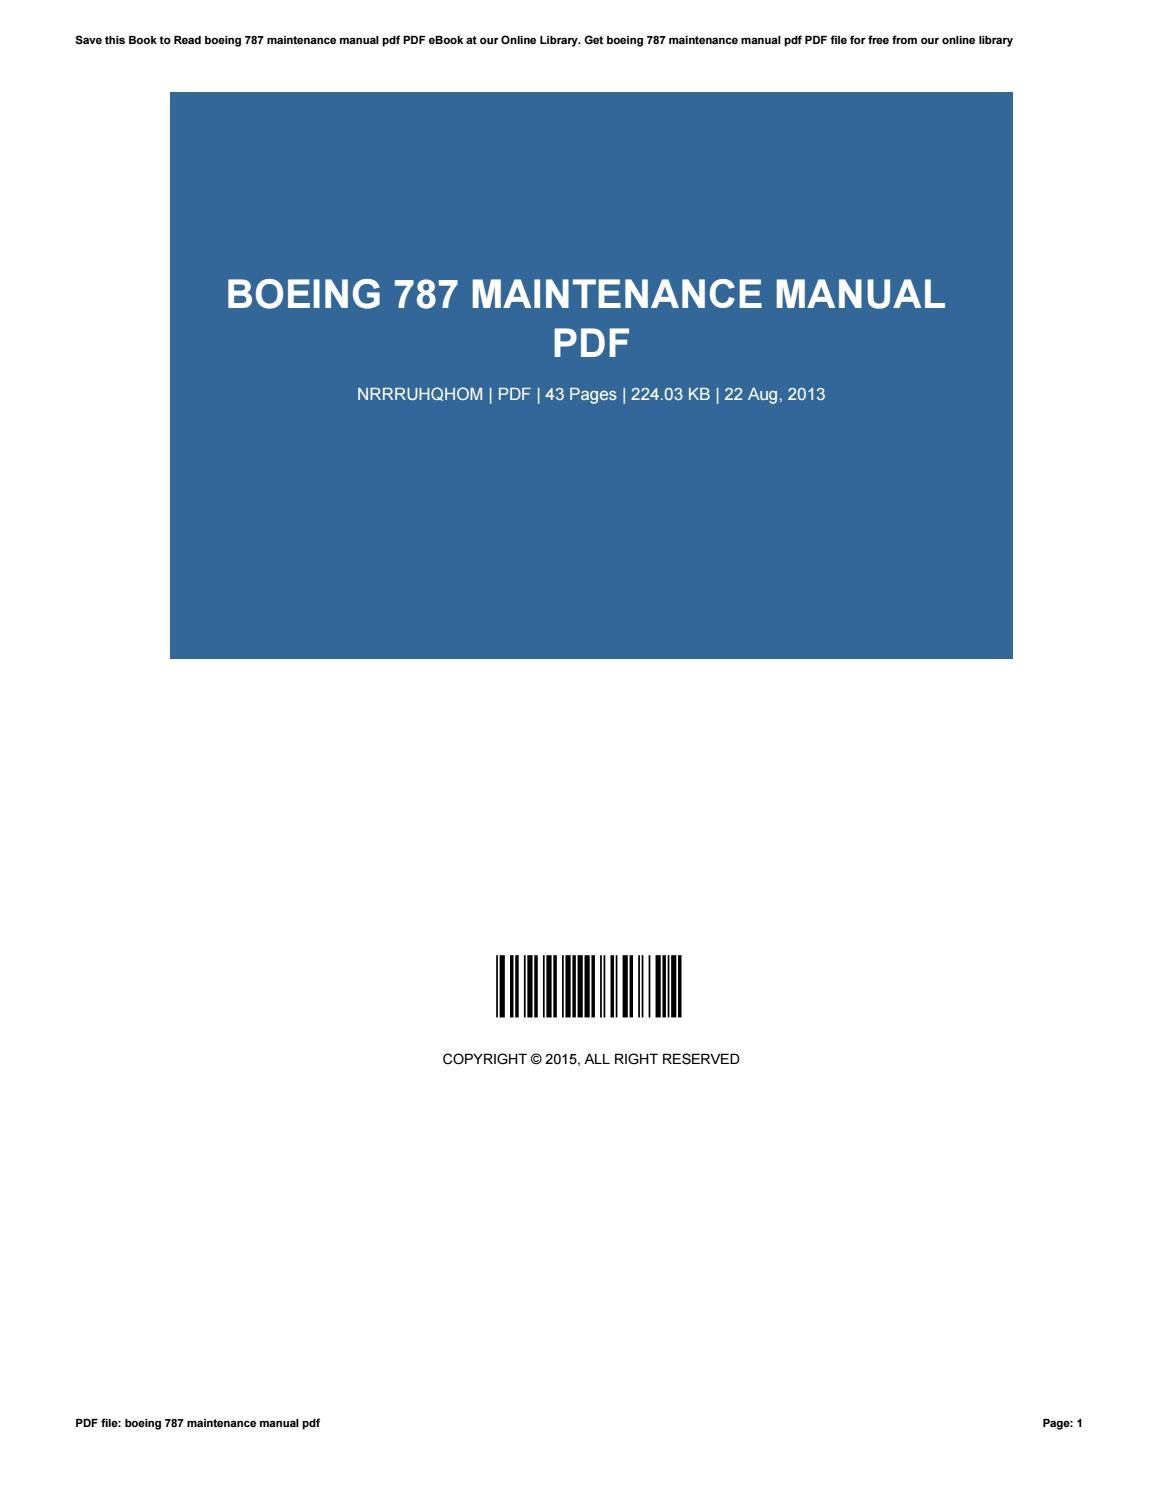 boeing 787 maintenance manual pdf by melissacollins2403 issuu rh issuu com boeing 787 aircraft maintenance manual boeing 787 maintenance training manual